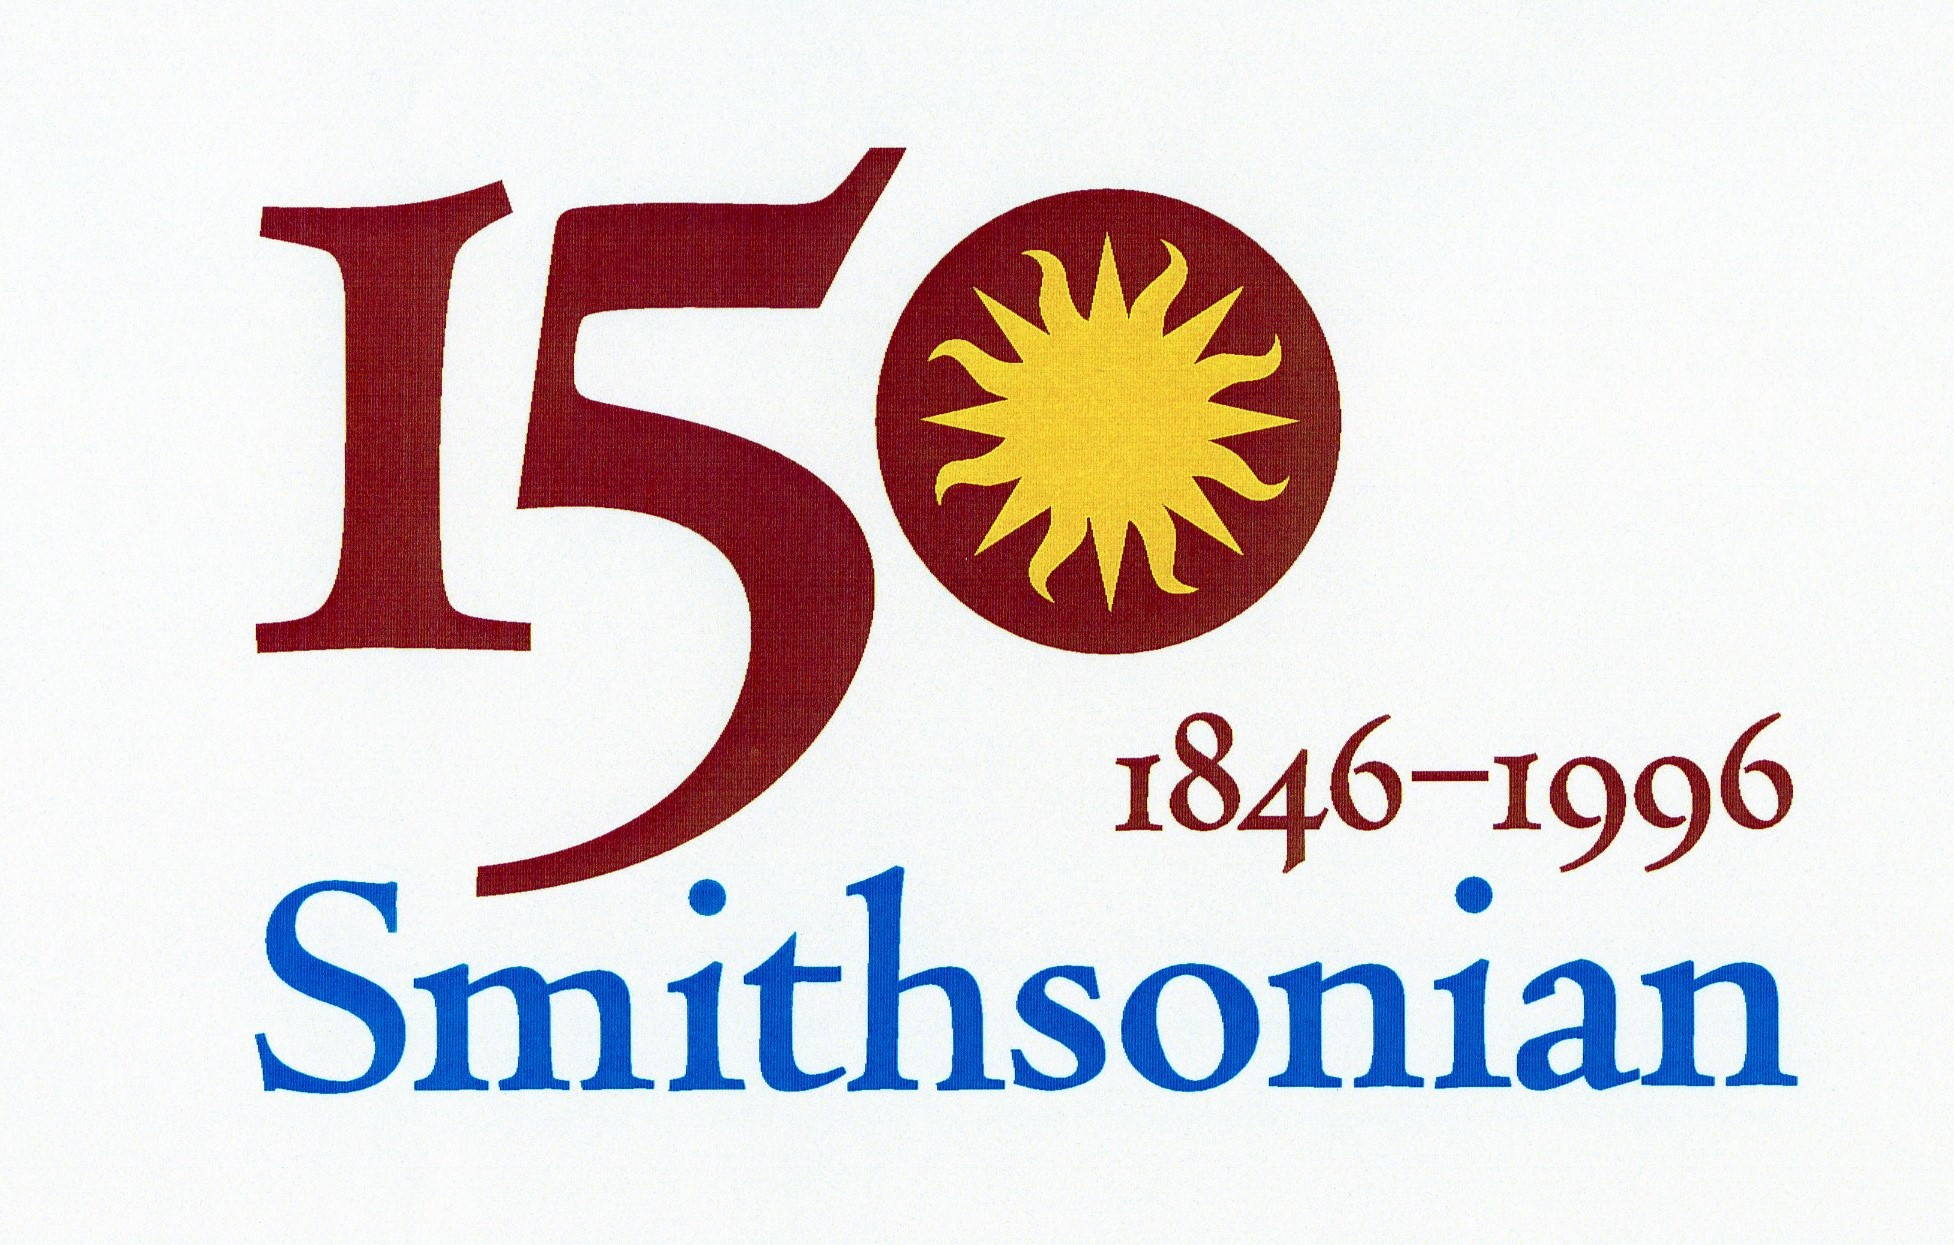 Smithsonian 150th Anniversary Logo, 1996. Image no. SIA2019-006021. Accession 97-069: Office of the